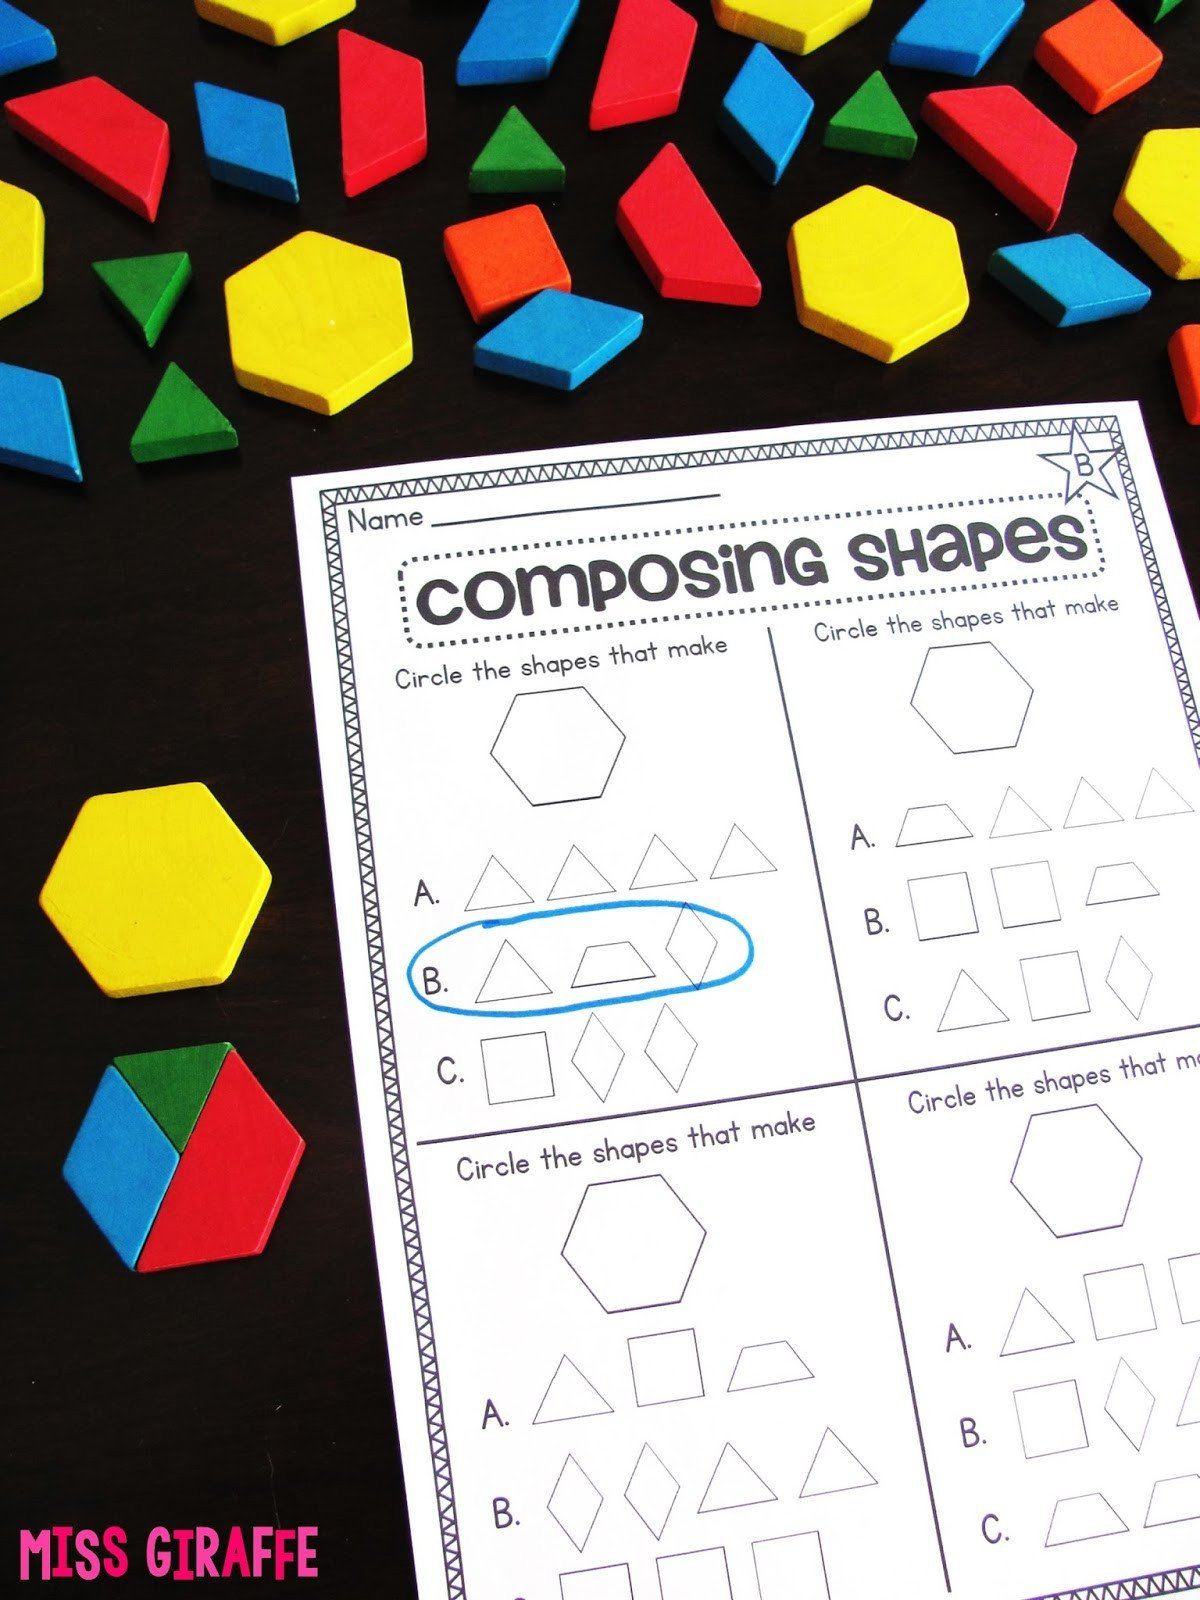 Geometric Shapes Patterns Worksheets Miss Giraffe S Class Posing Shapes In 1st Grade